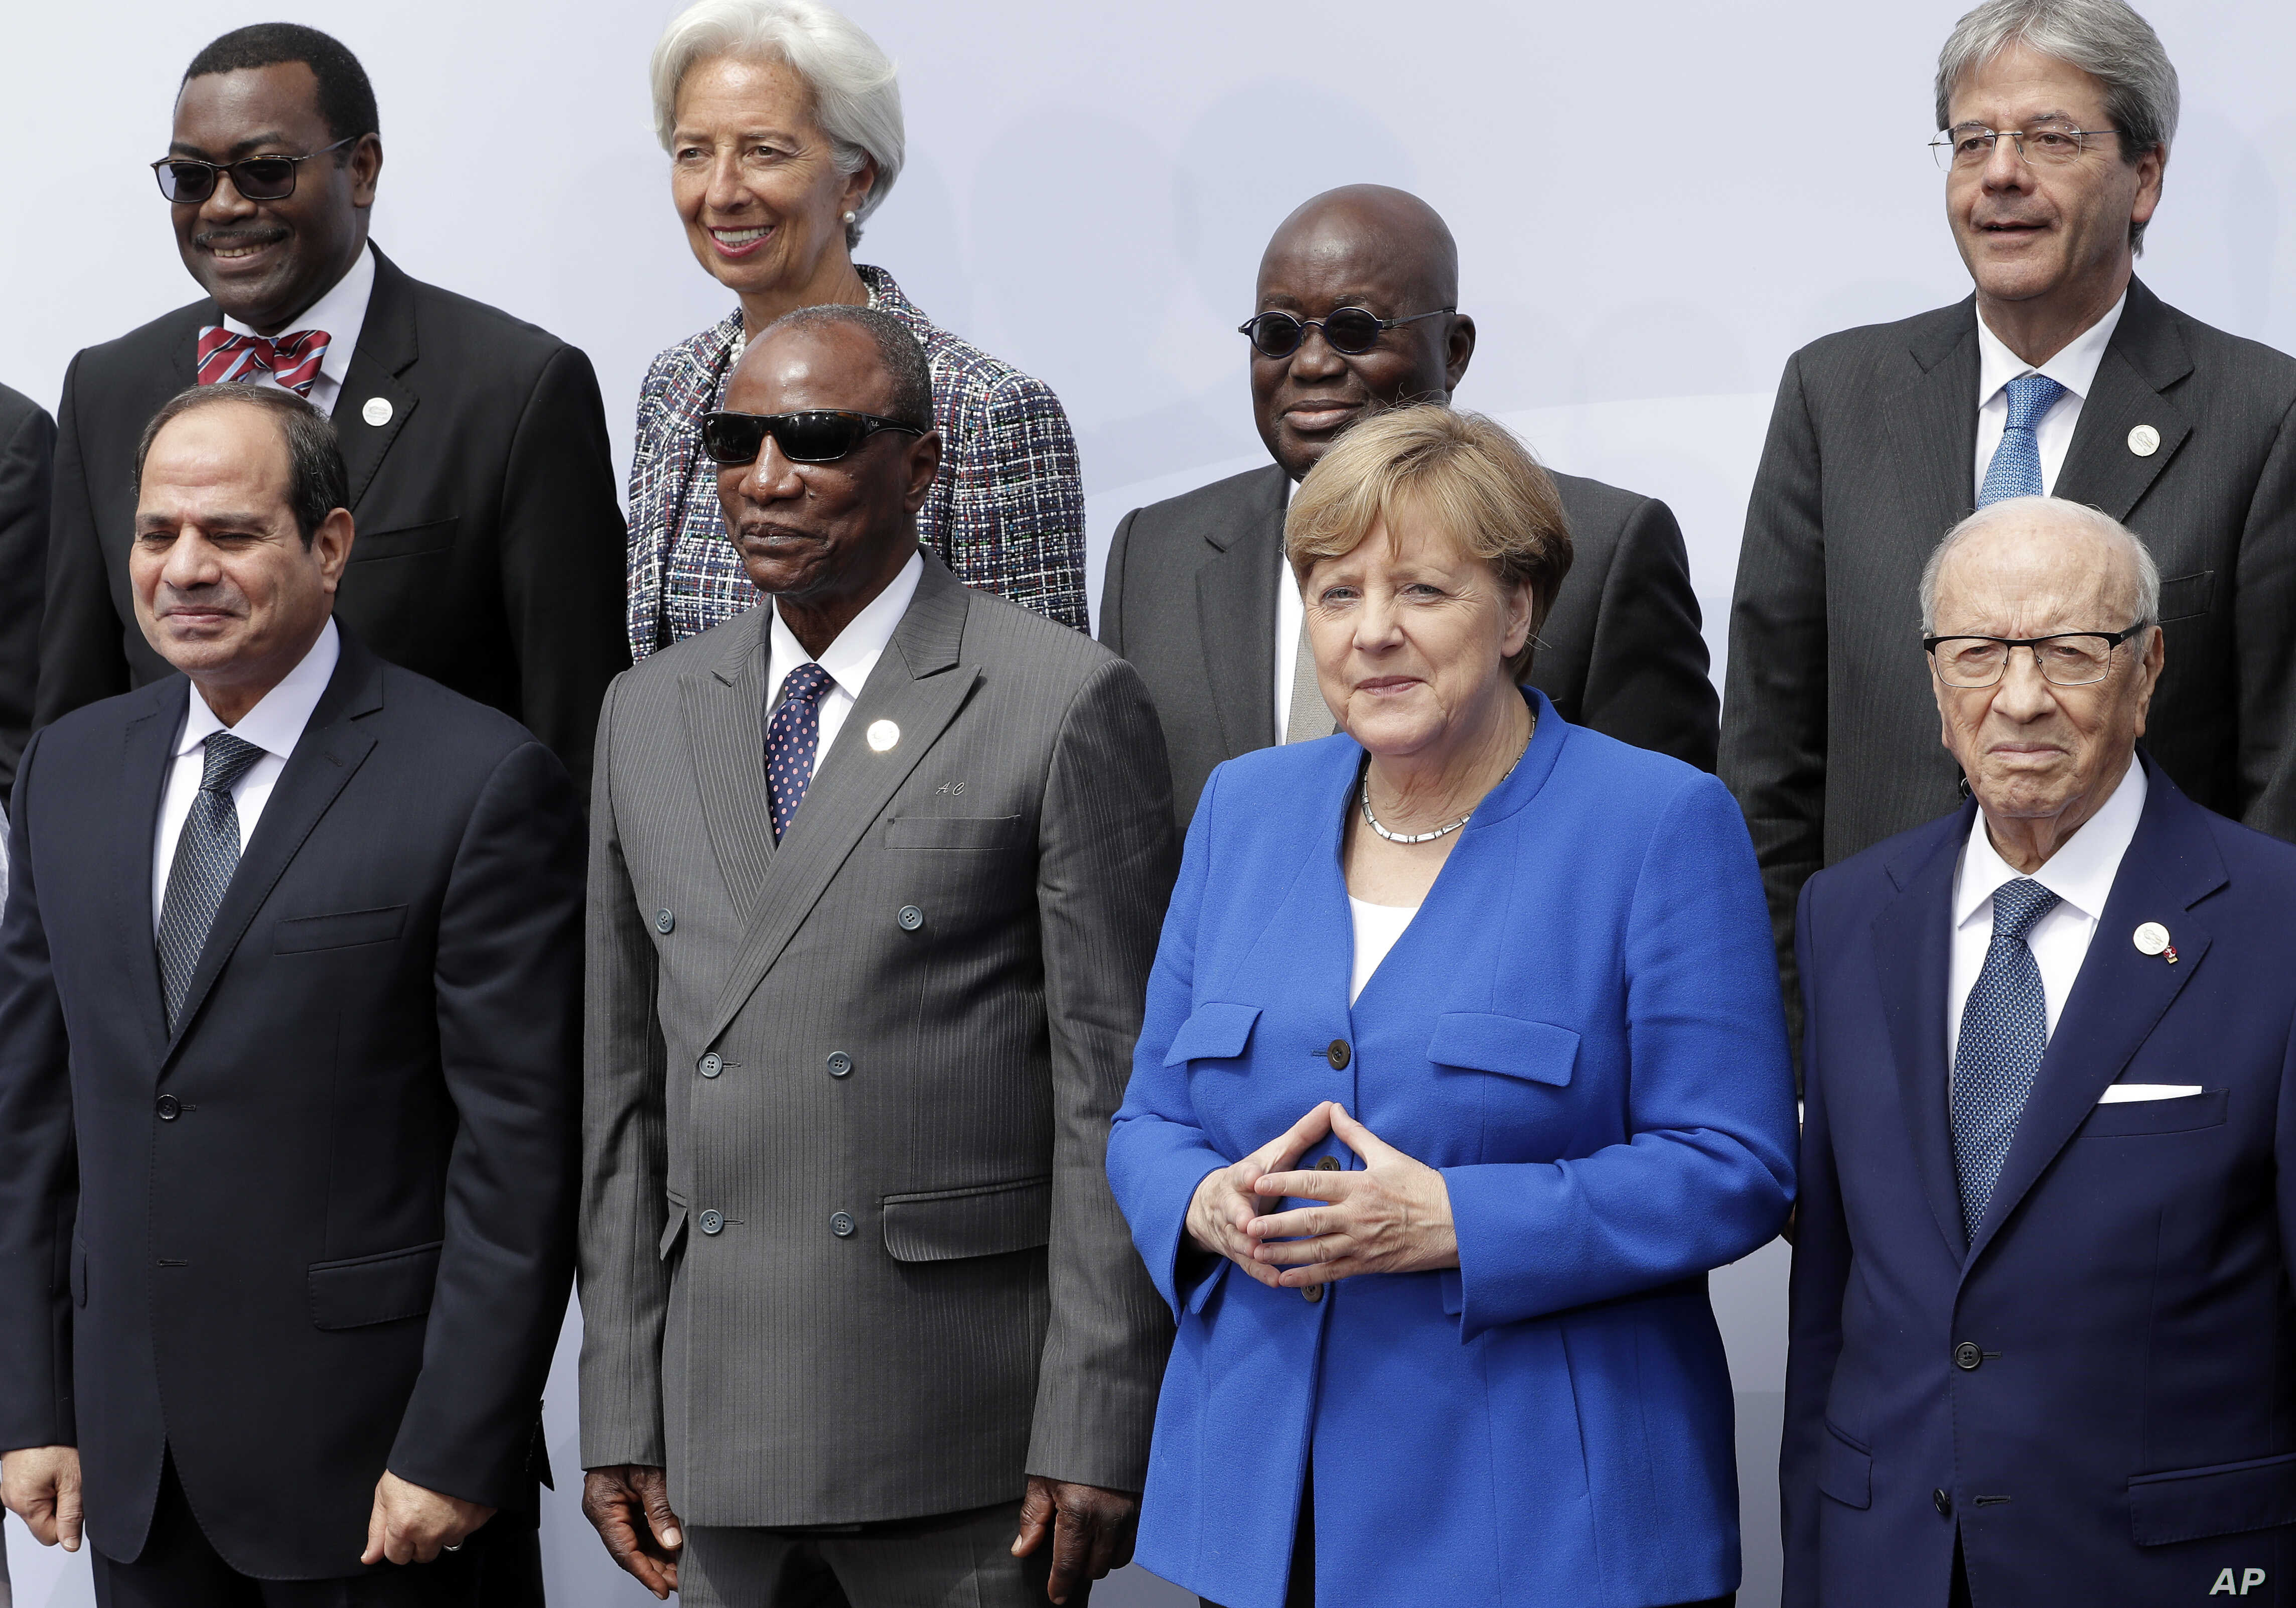 Front from left, the president of Egypt, Abdel Fattah el-Sissi, chairman of the African Union and President of Guinea Alpha Conde, German Chancellor Angela Merkel and the President of Tunisia during the conference 'G20 Africa Partnership – Investin...